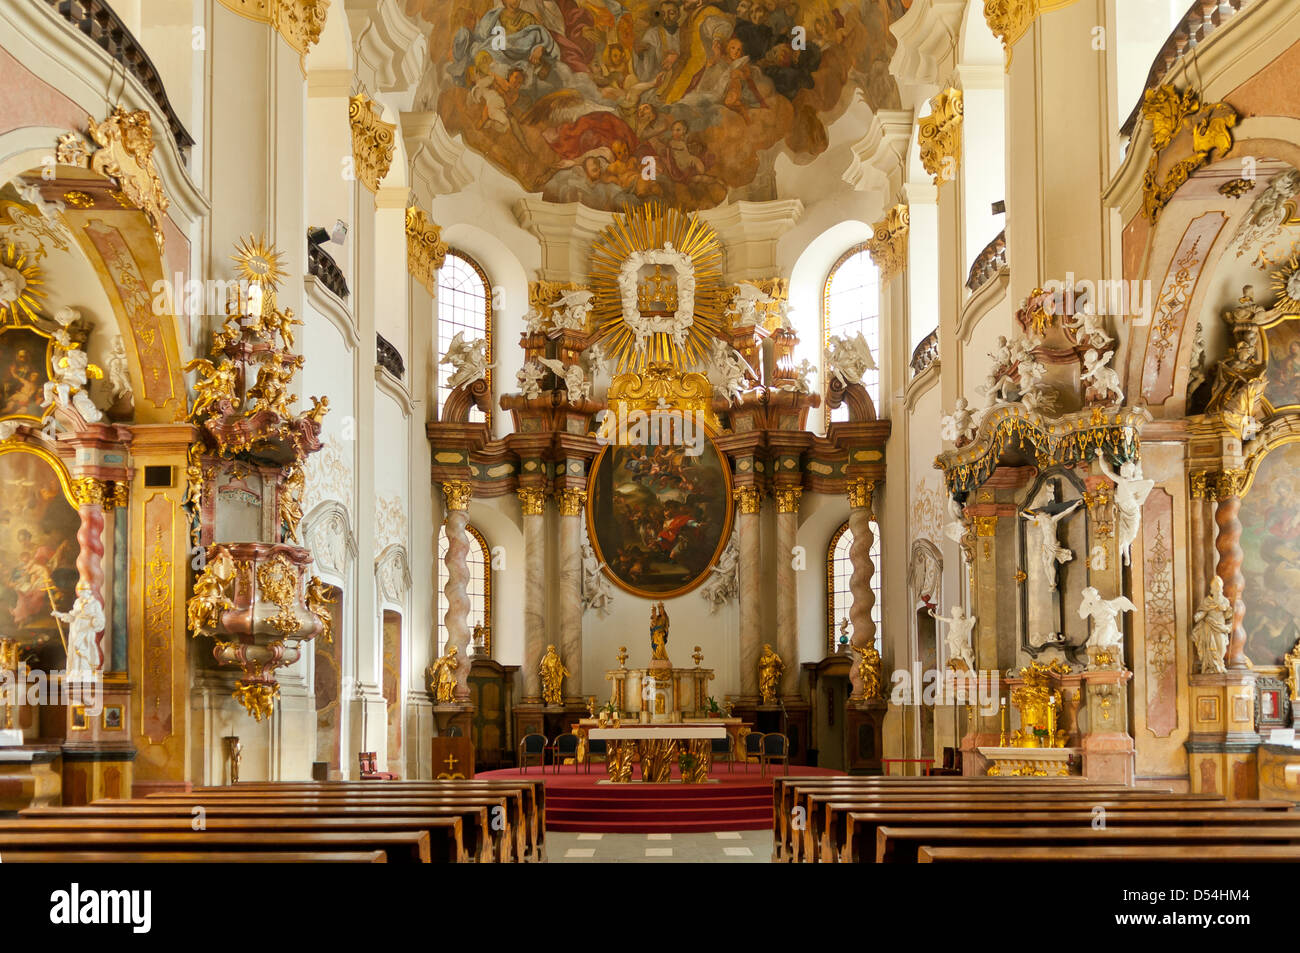 Inside Church of Our Lady of the Snows, Olomouc, Czech Republic - Stock Image